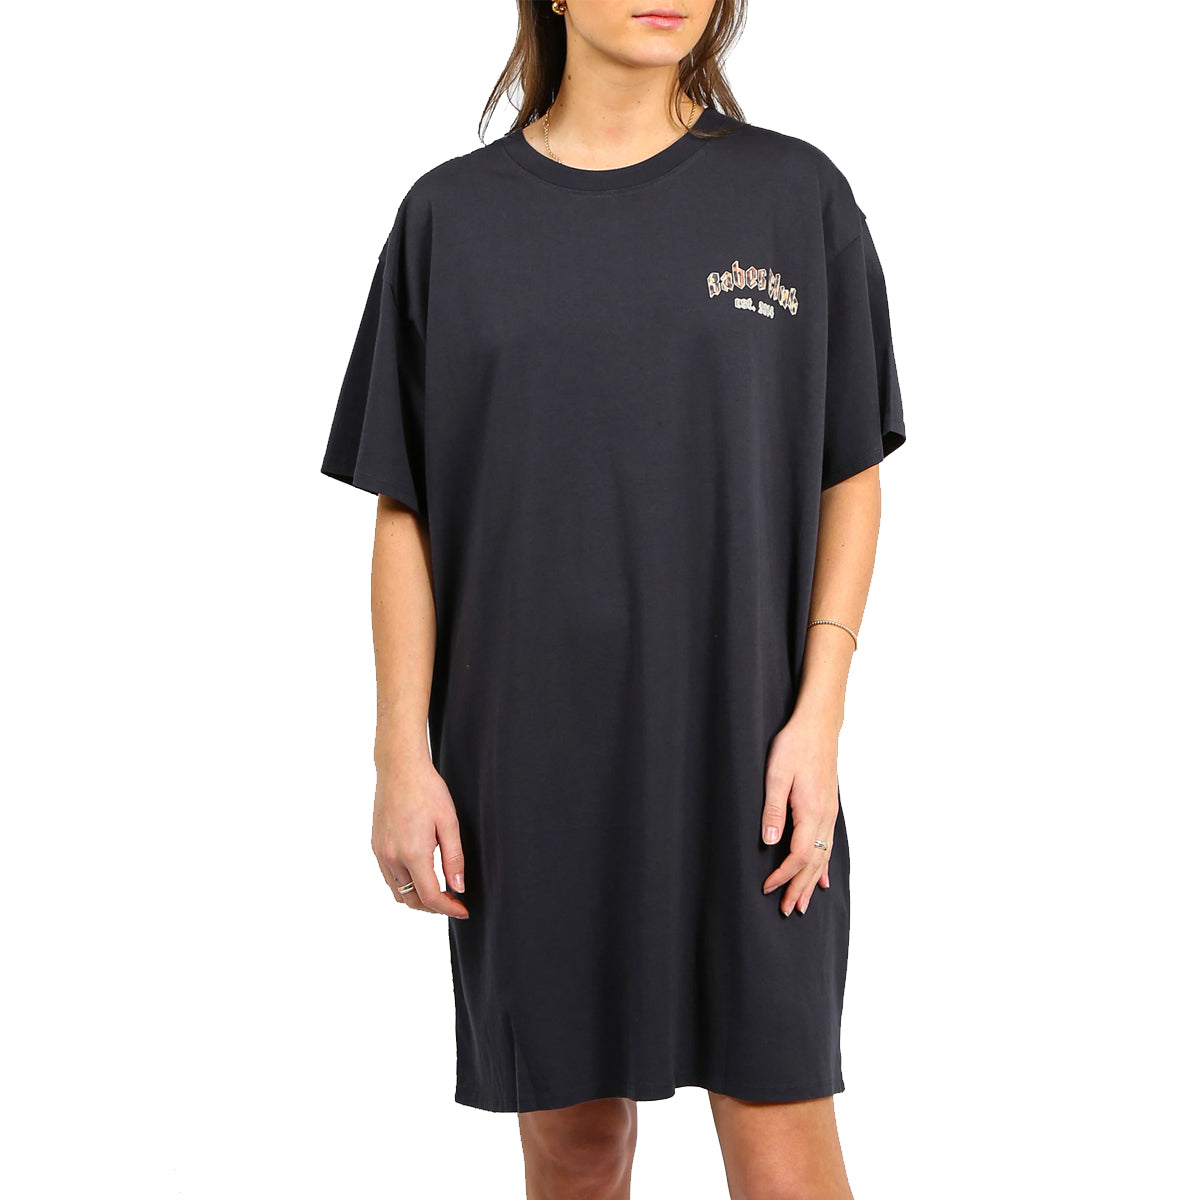 Brunette Women's The Babes Club Boxy Tee Dress - Charcoal